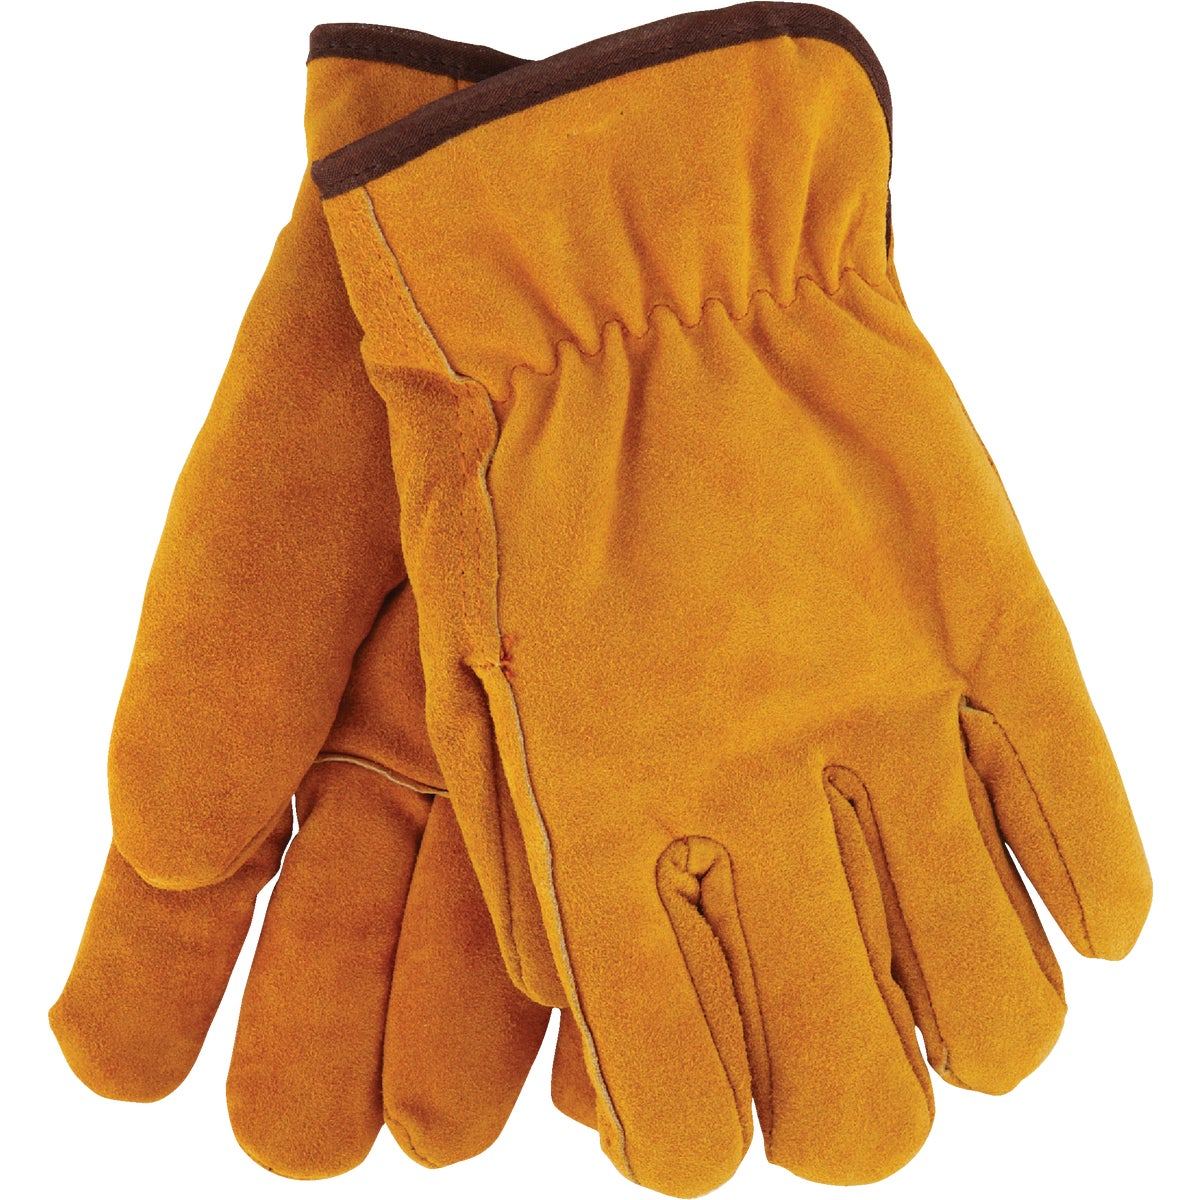 XL LEATHER LINED GLOVE